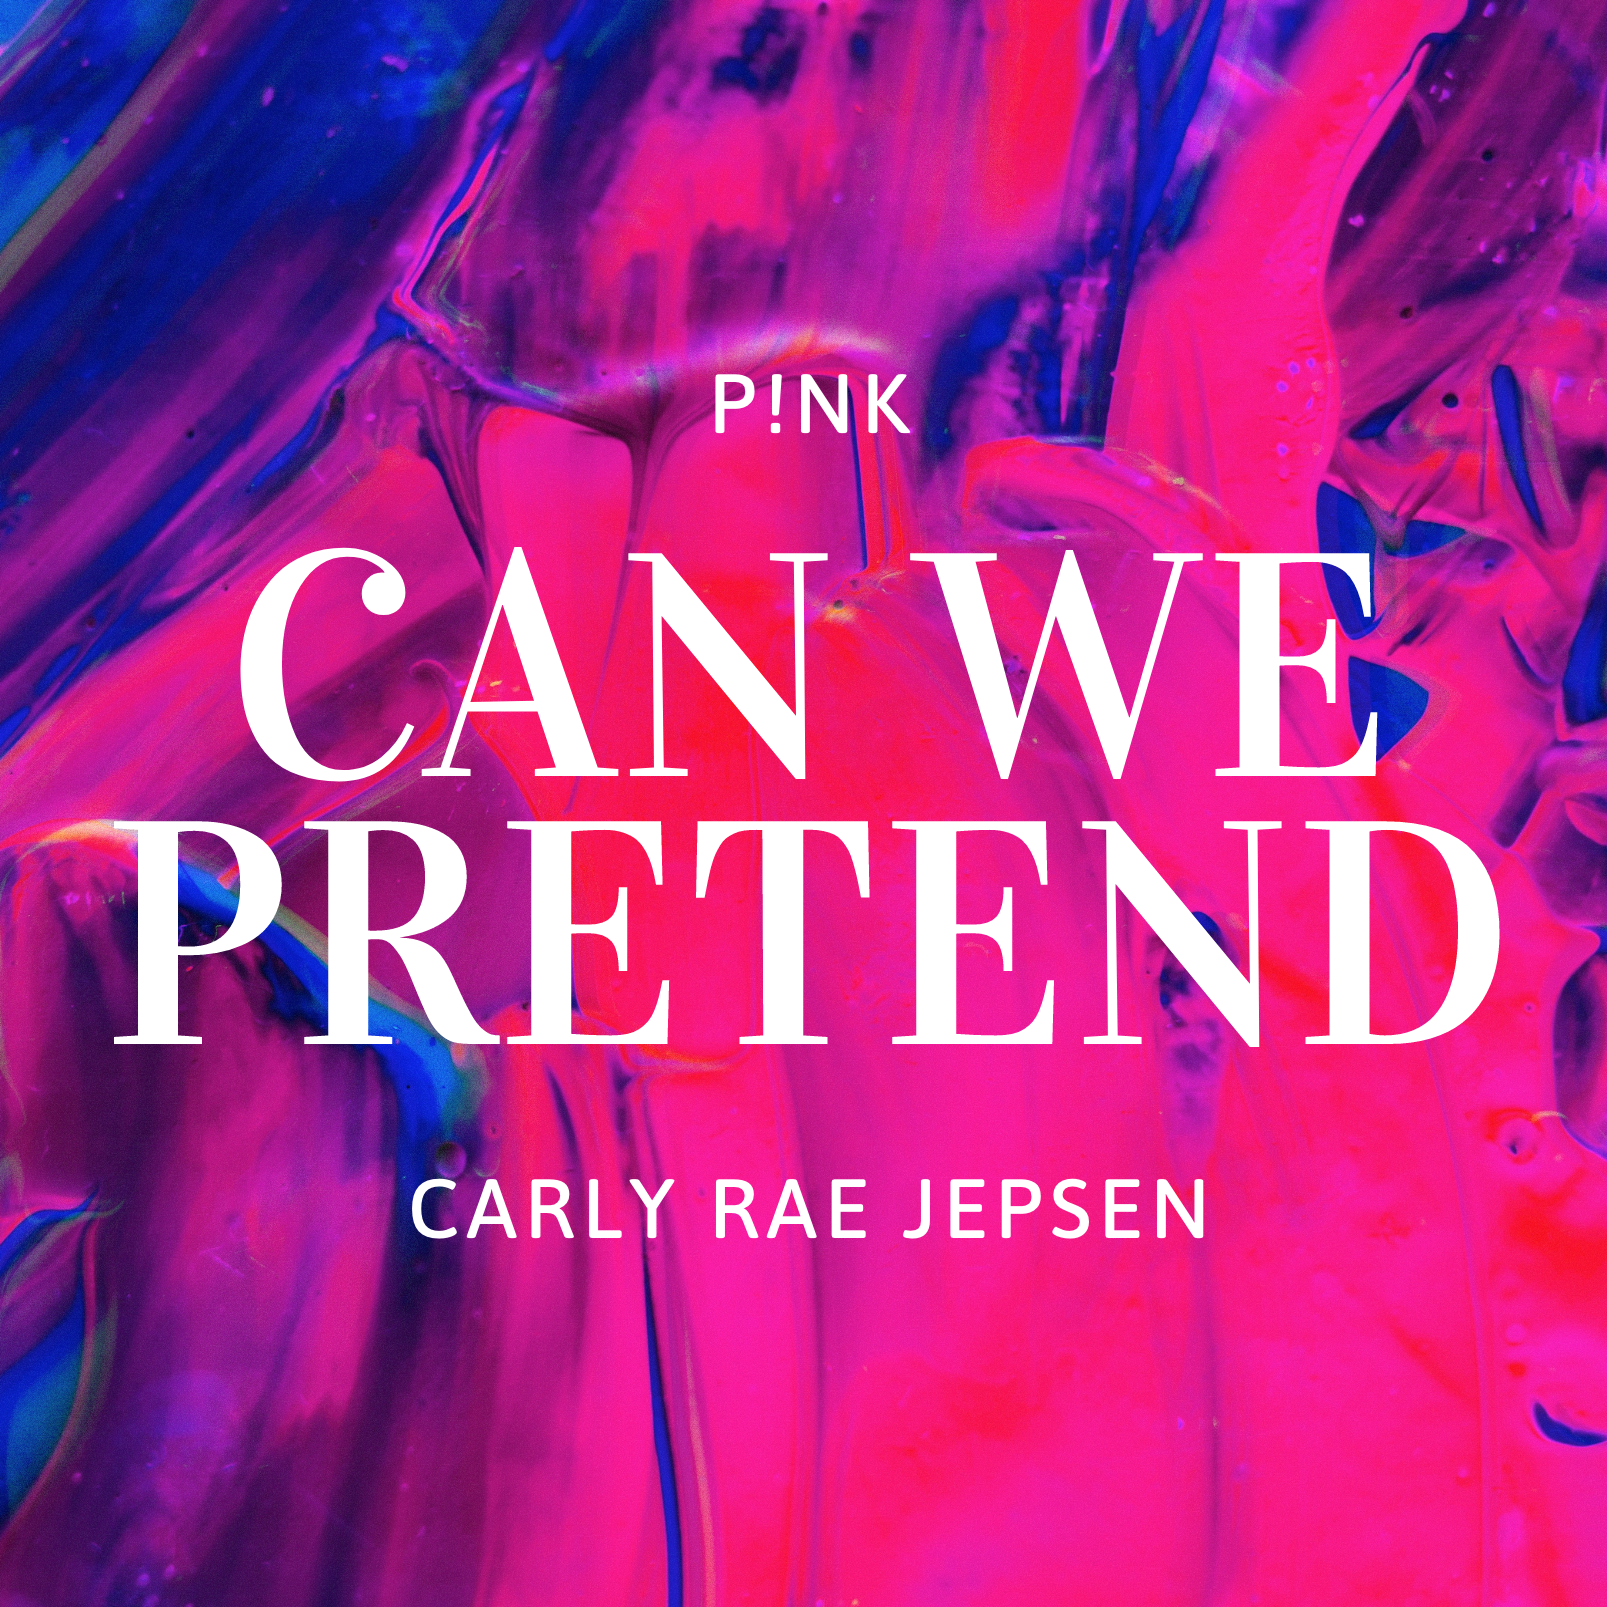 P!nk Vs. Carly Rae Jepsen - Can We Pretend (Mashup)